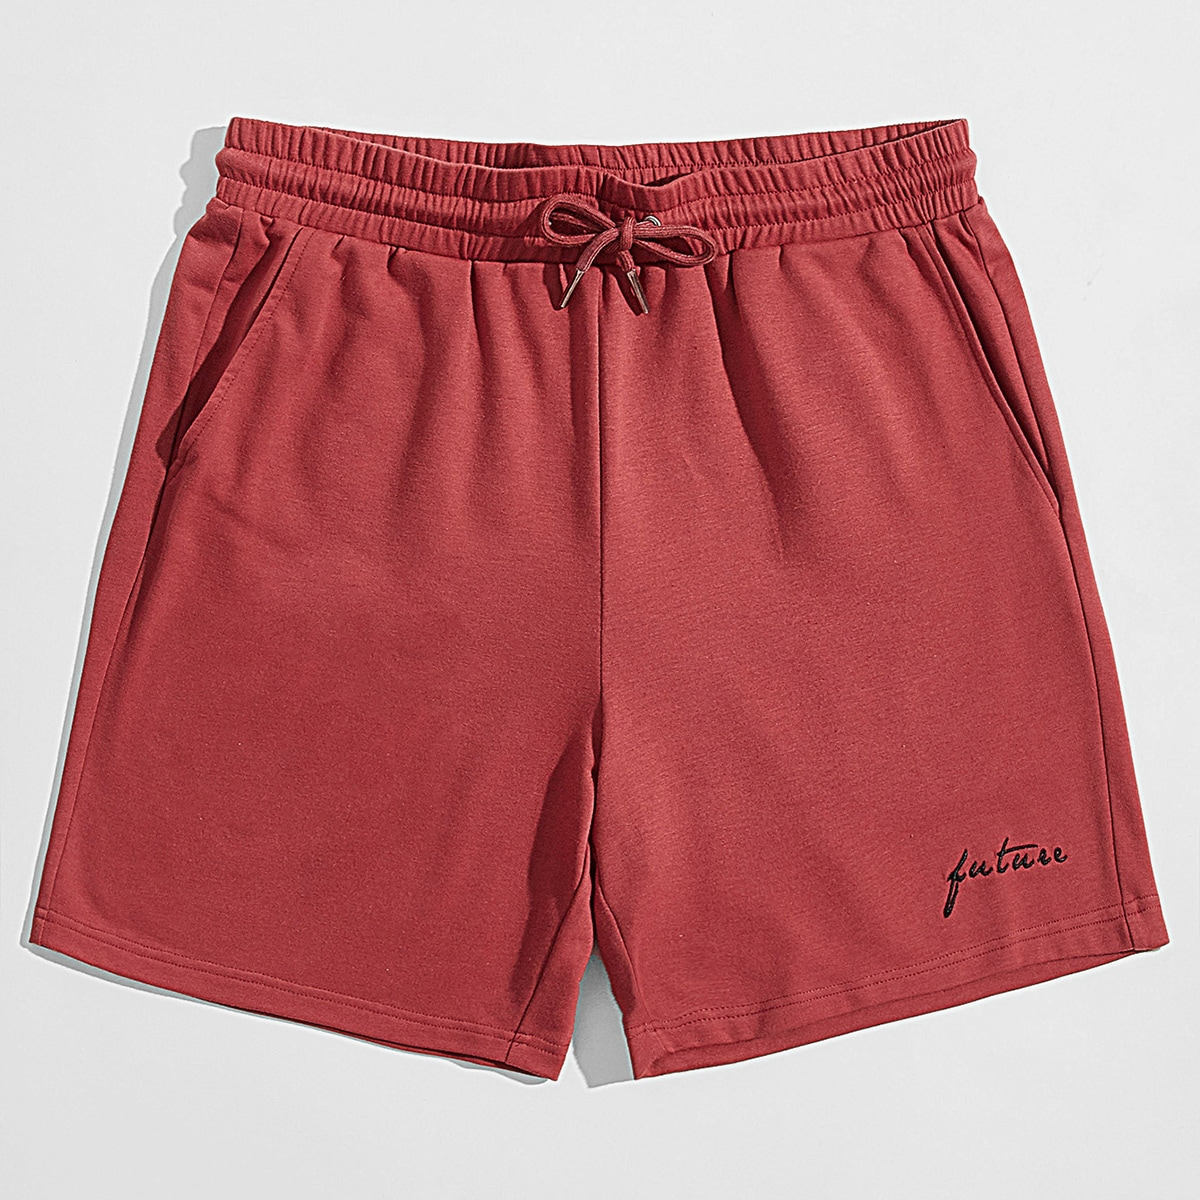 Men Letter Embroidery Drawstring Waist Track Shorts, SHEIN  - buy with discount